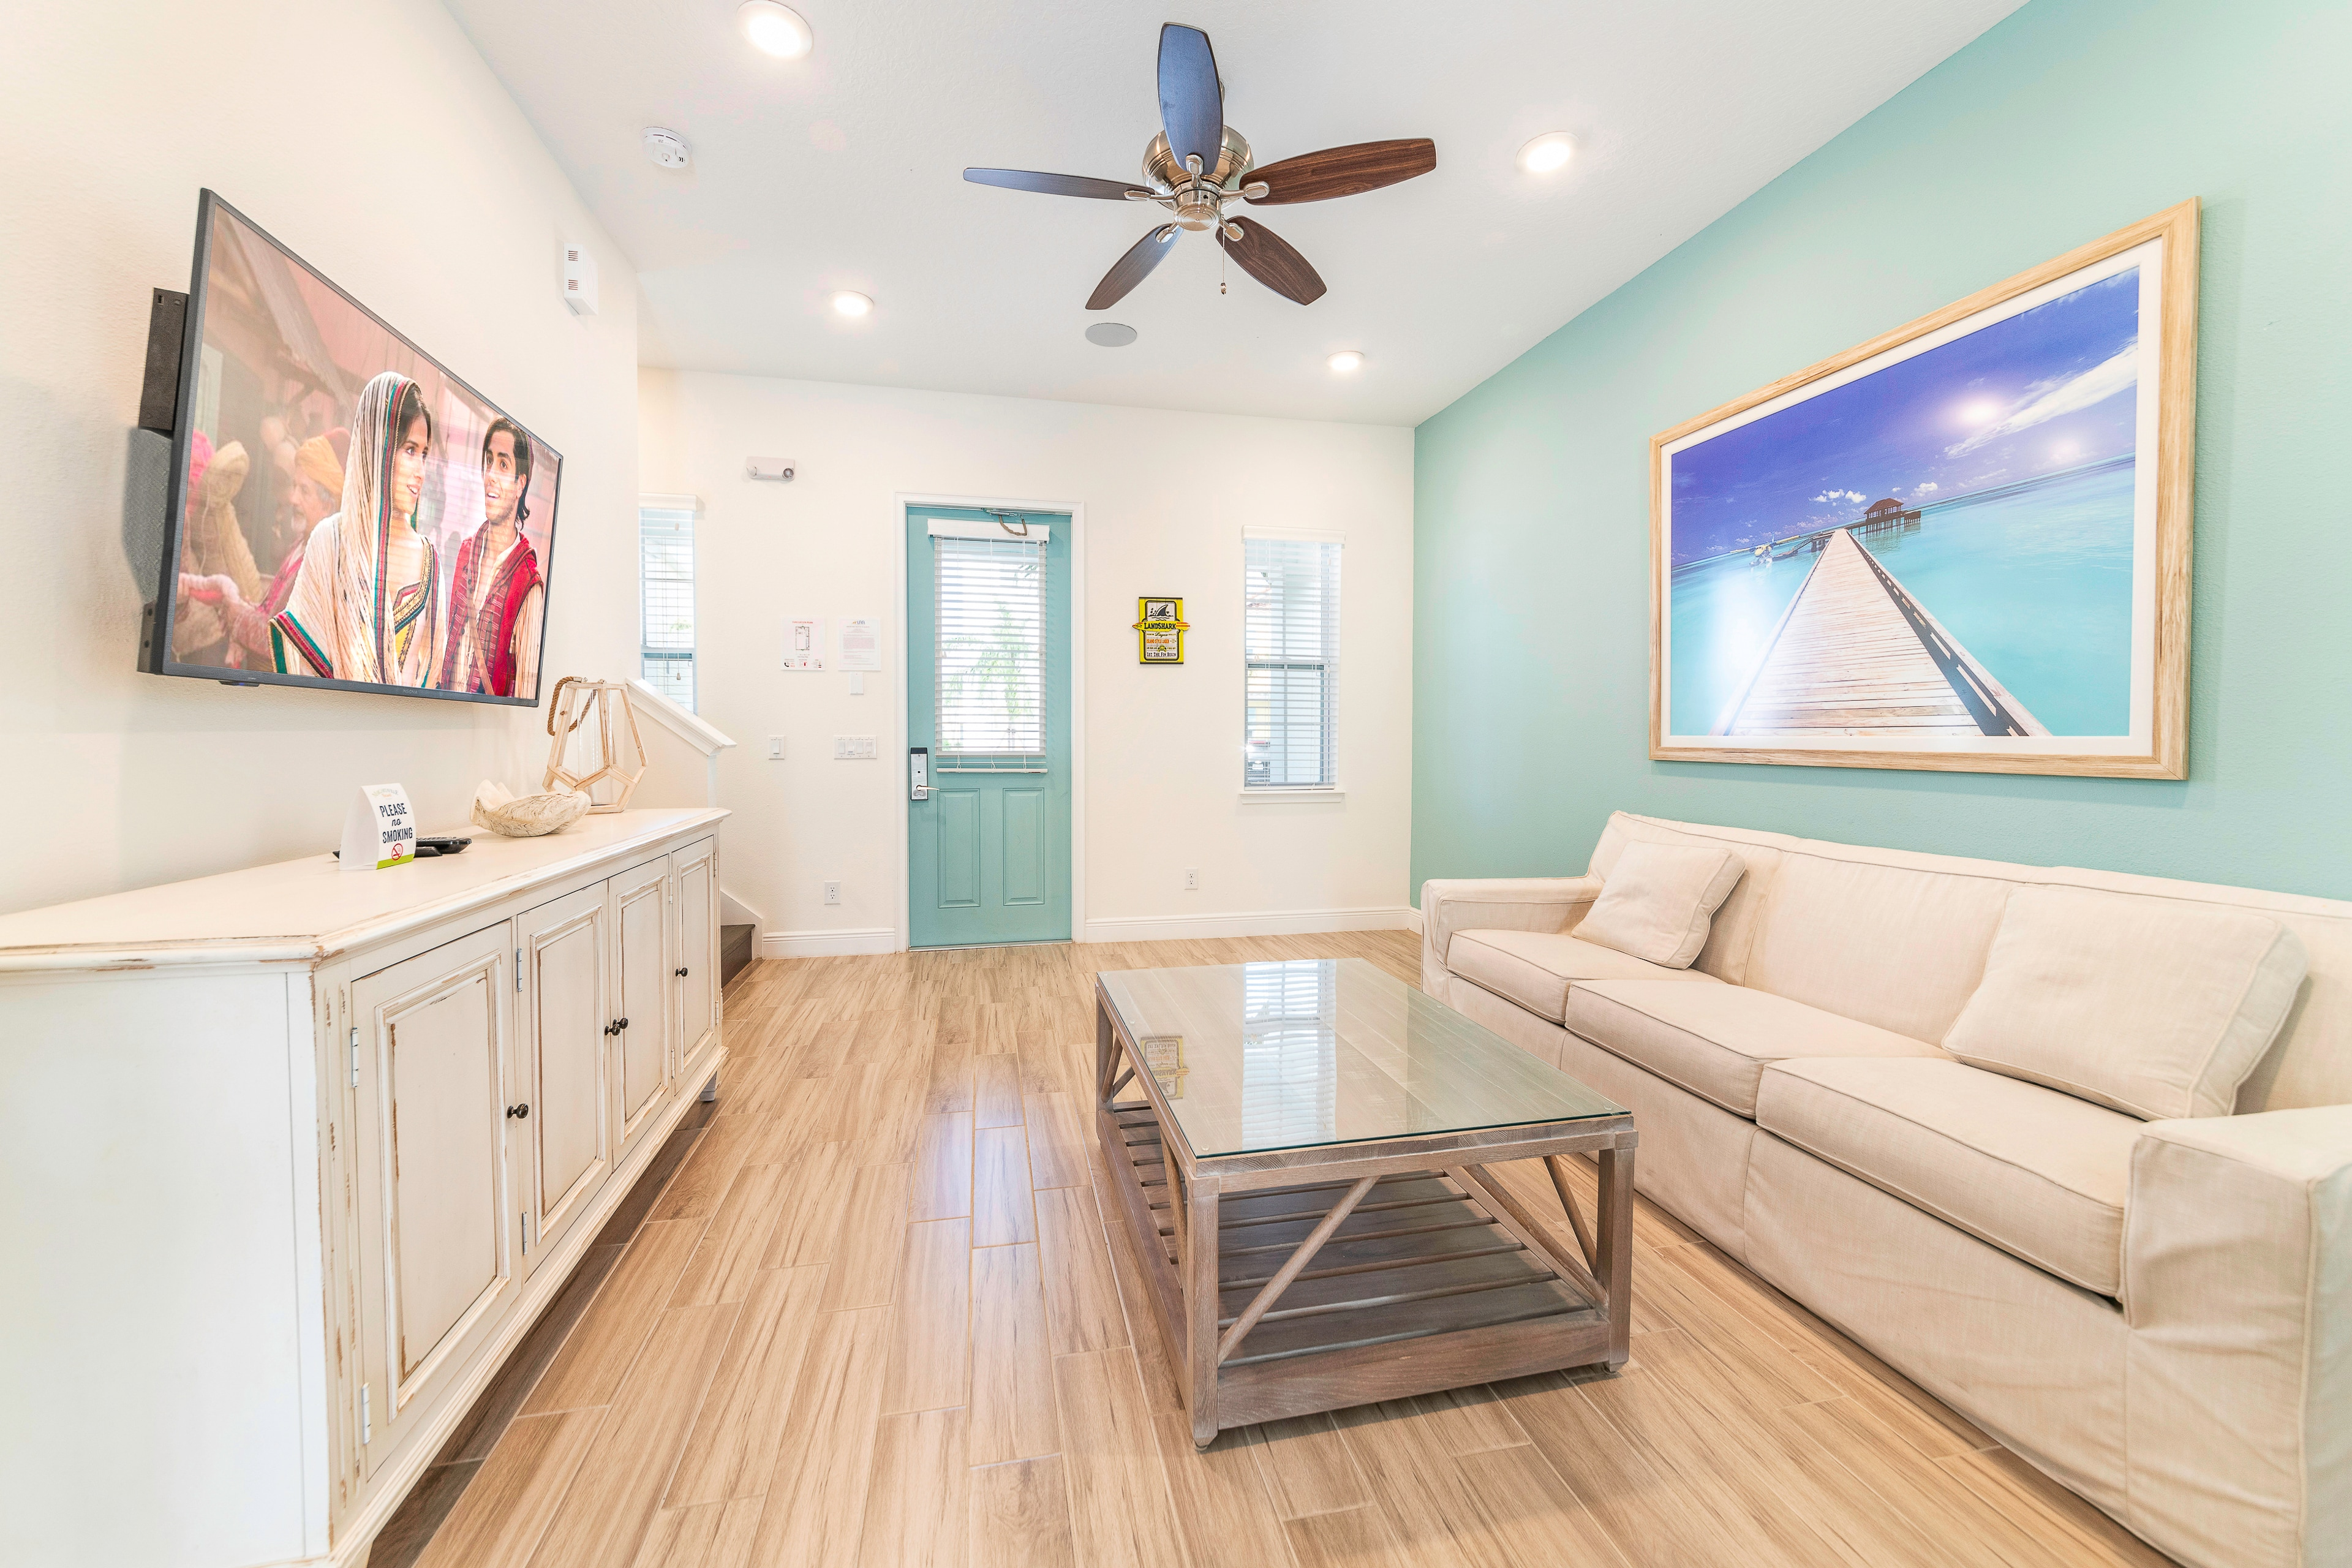 Property Image 2 - Bright Cottage near Disney World with Hotel Amenities